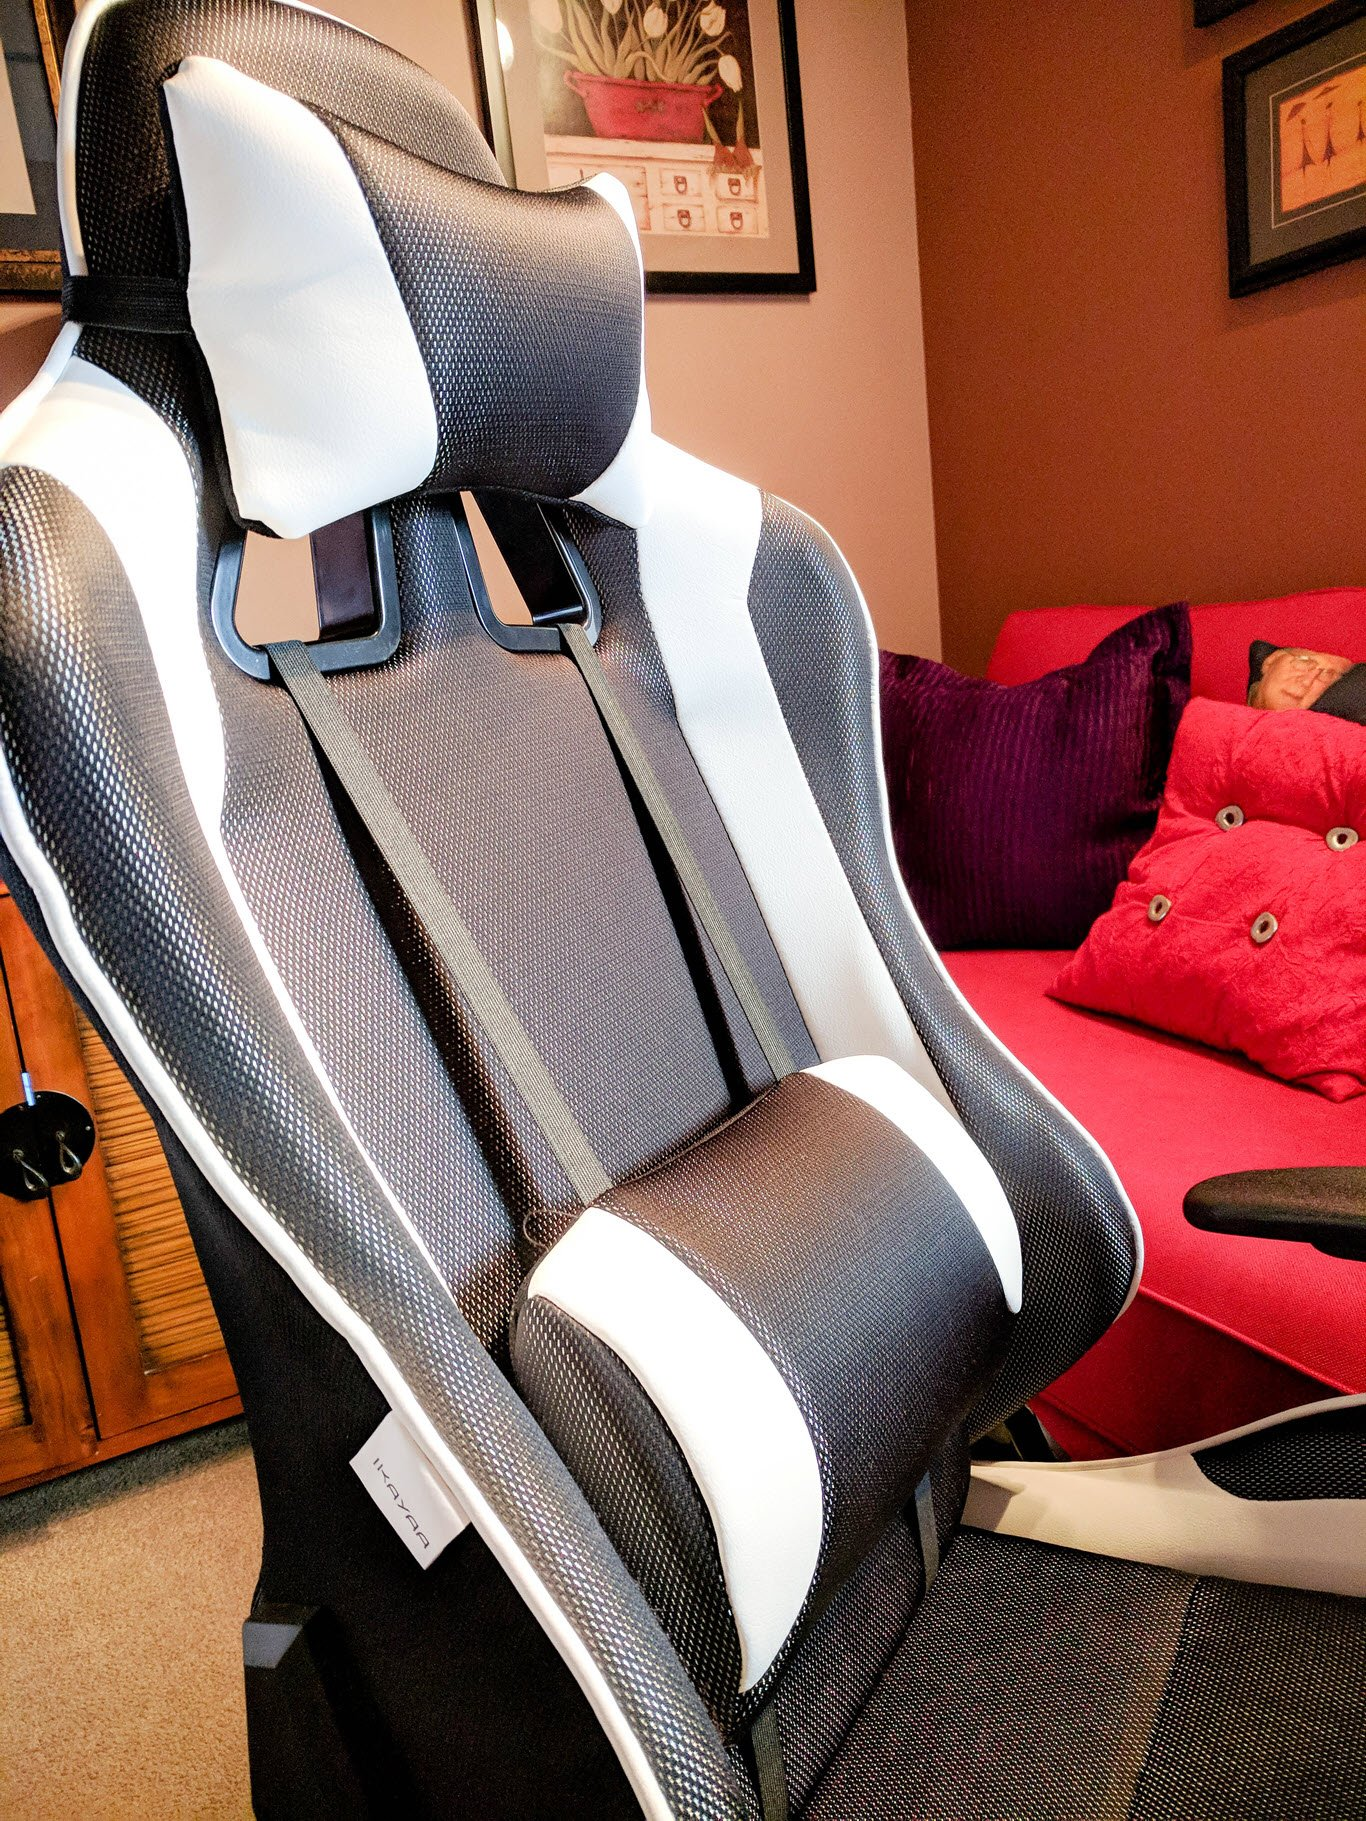 posture gaming chair baby pillow 6 of the best tips for sitting in your computer